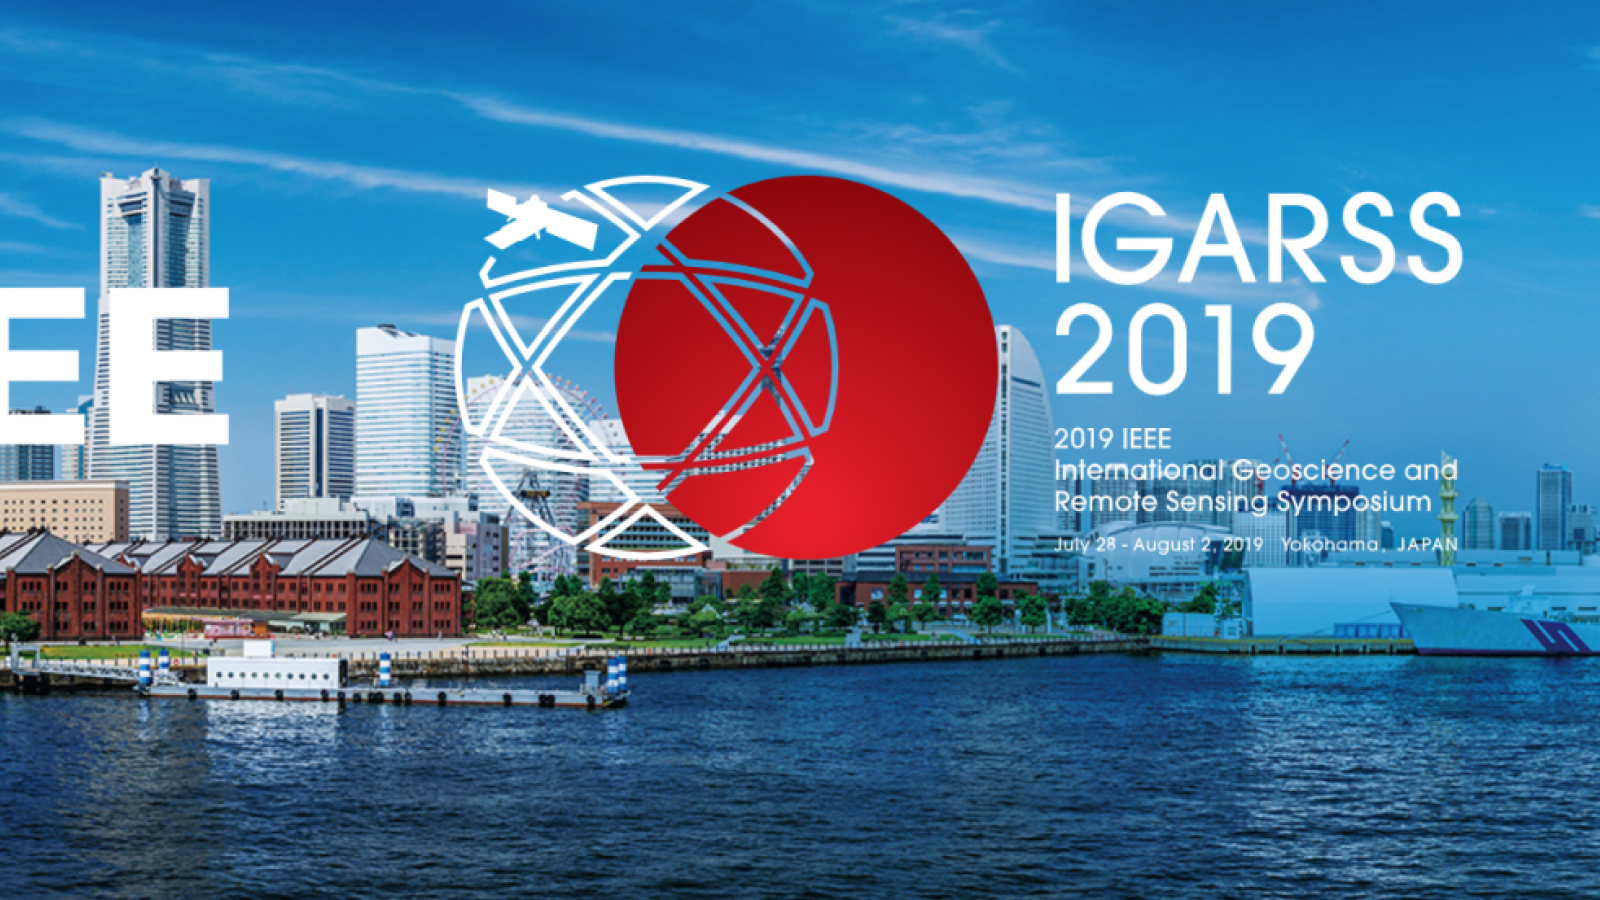 Japanese city with logos on front, part of the IGARSS 2019 in Yokohama, Japan website